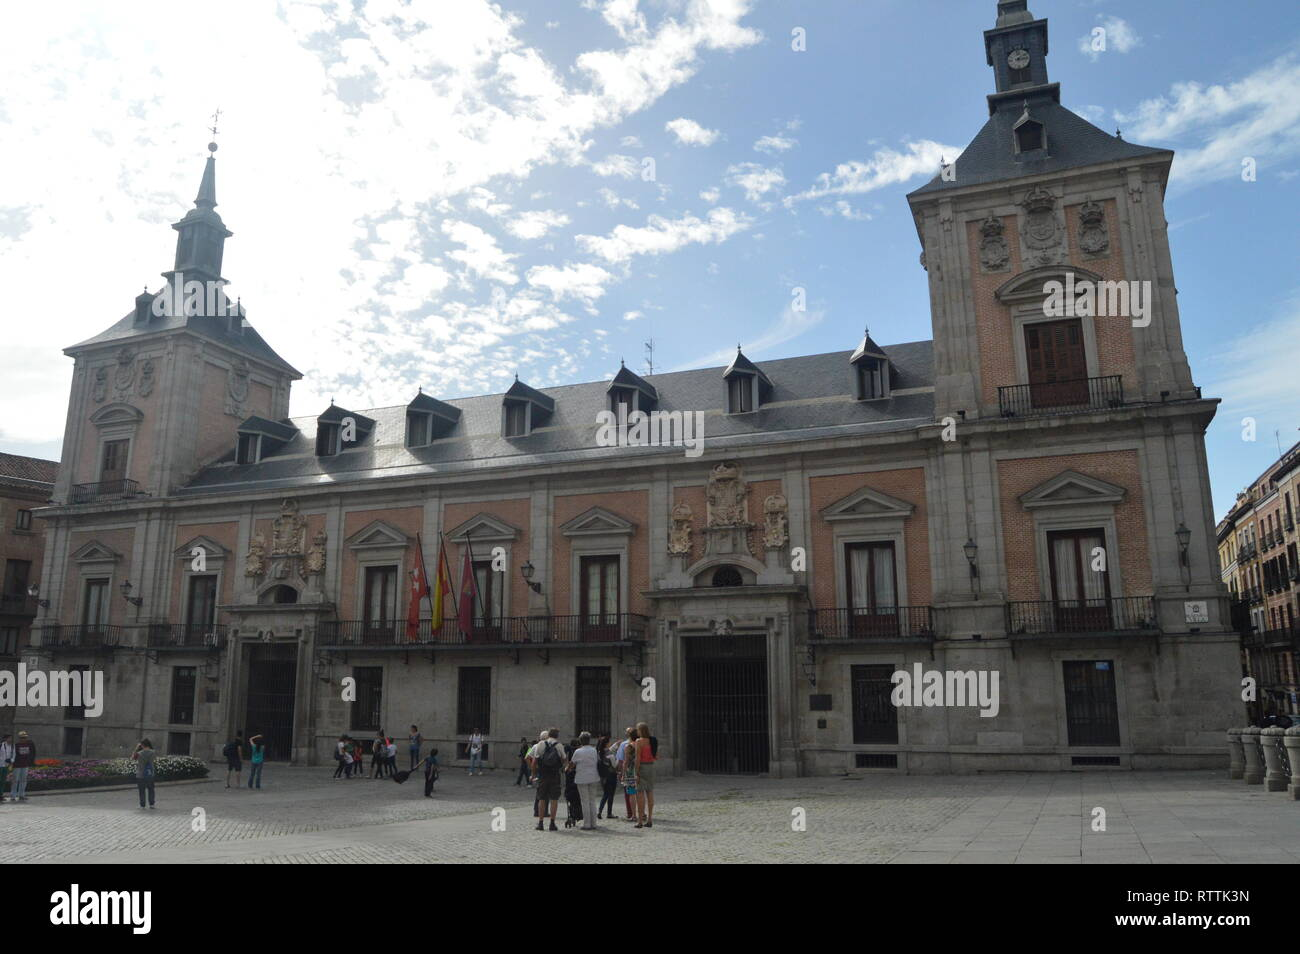 Main Facade of Madrid City Hall Located in the Villa Square Dataded in the Fifteenth Century Is The Medieval Style. Architecture, History, Travel. Oct - Stock Image